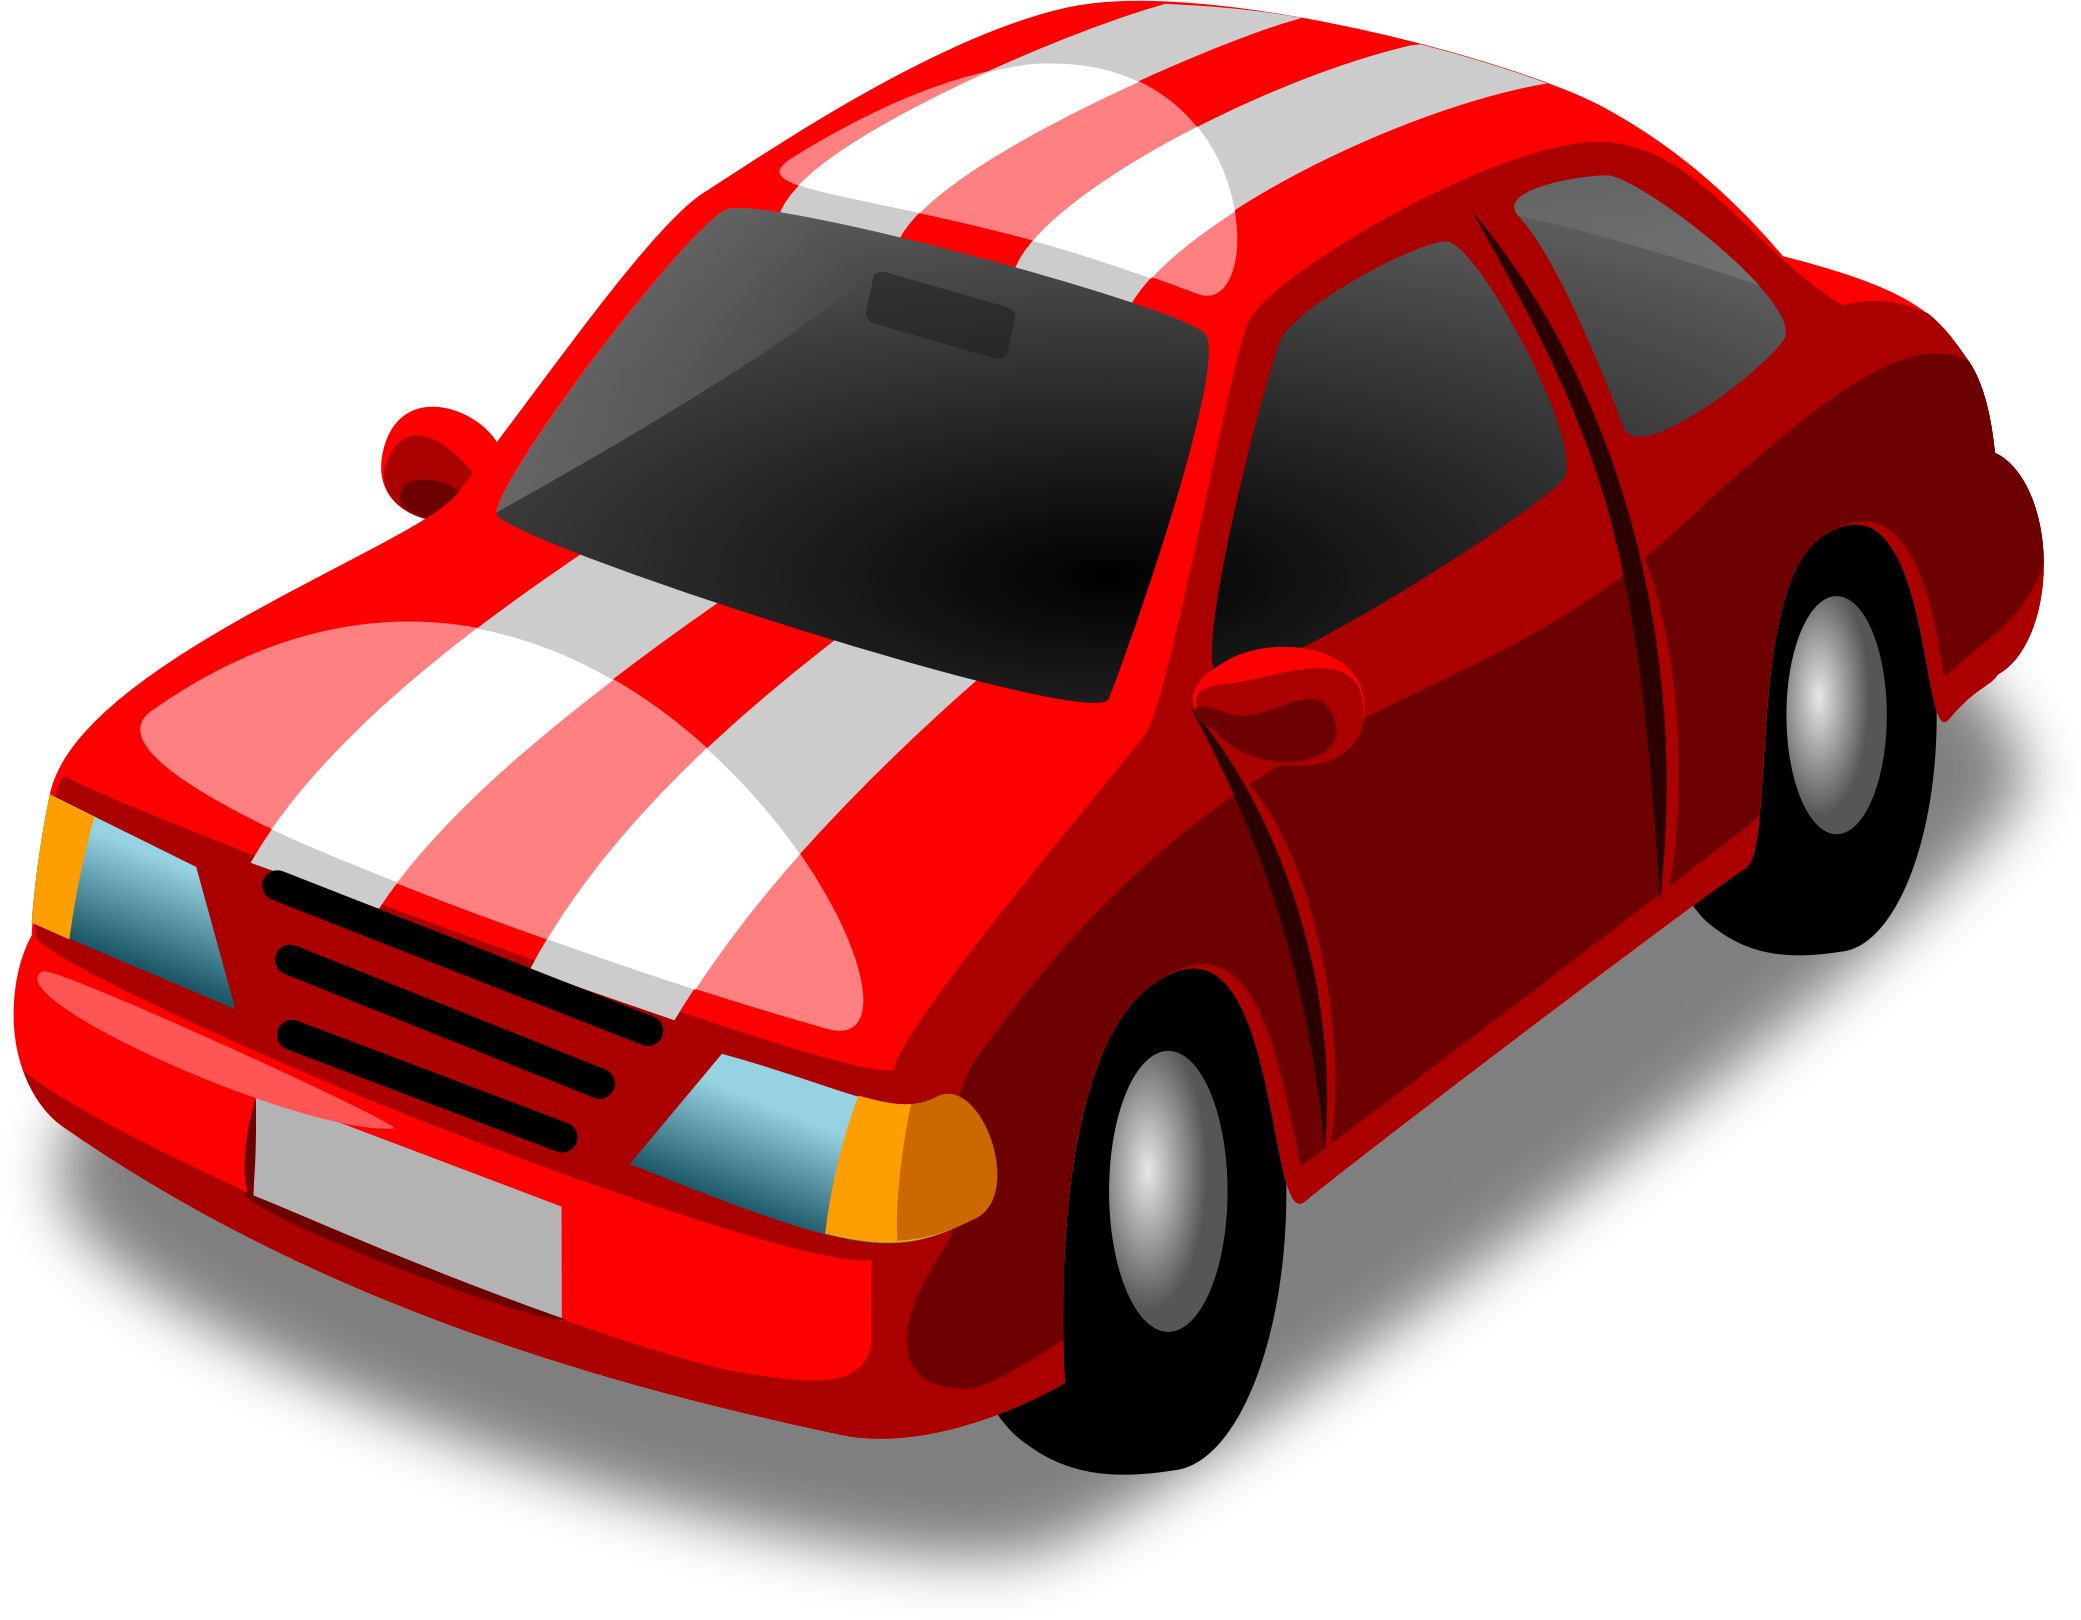 jpg black and white download Race car at getdrawings. Nascar clipart red.